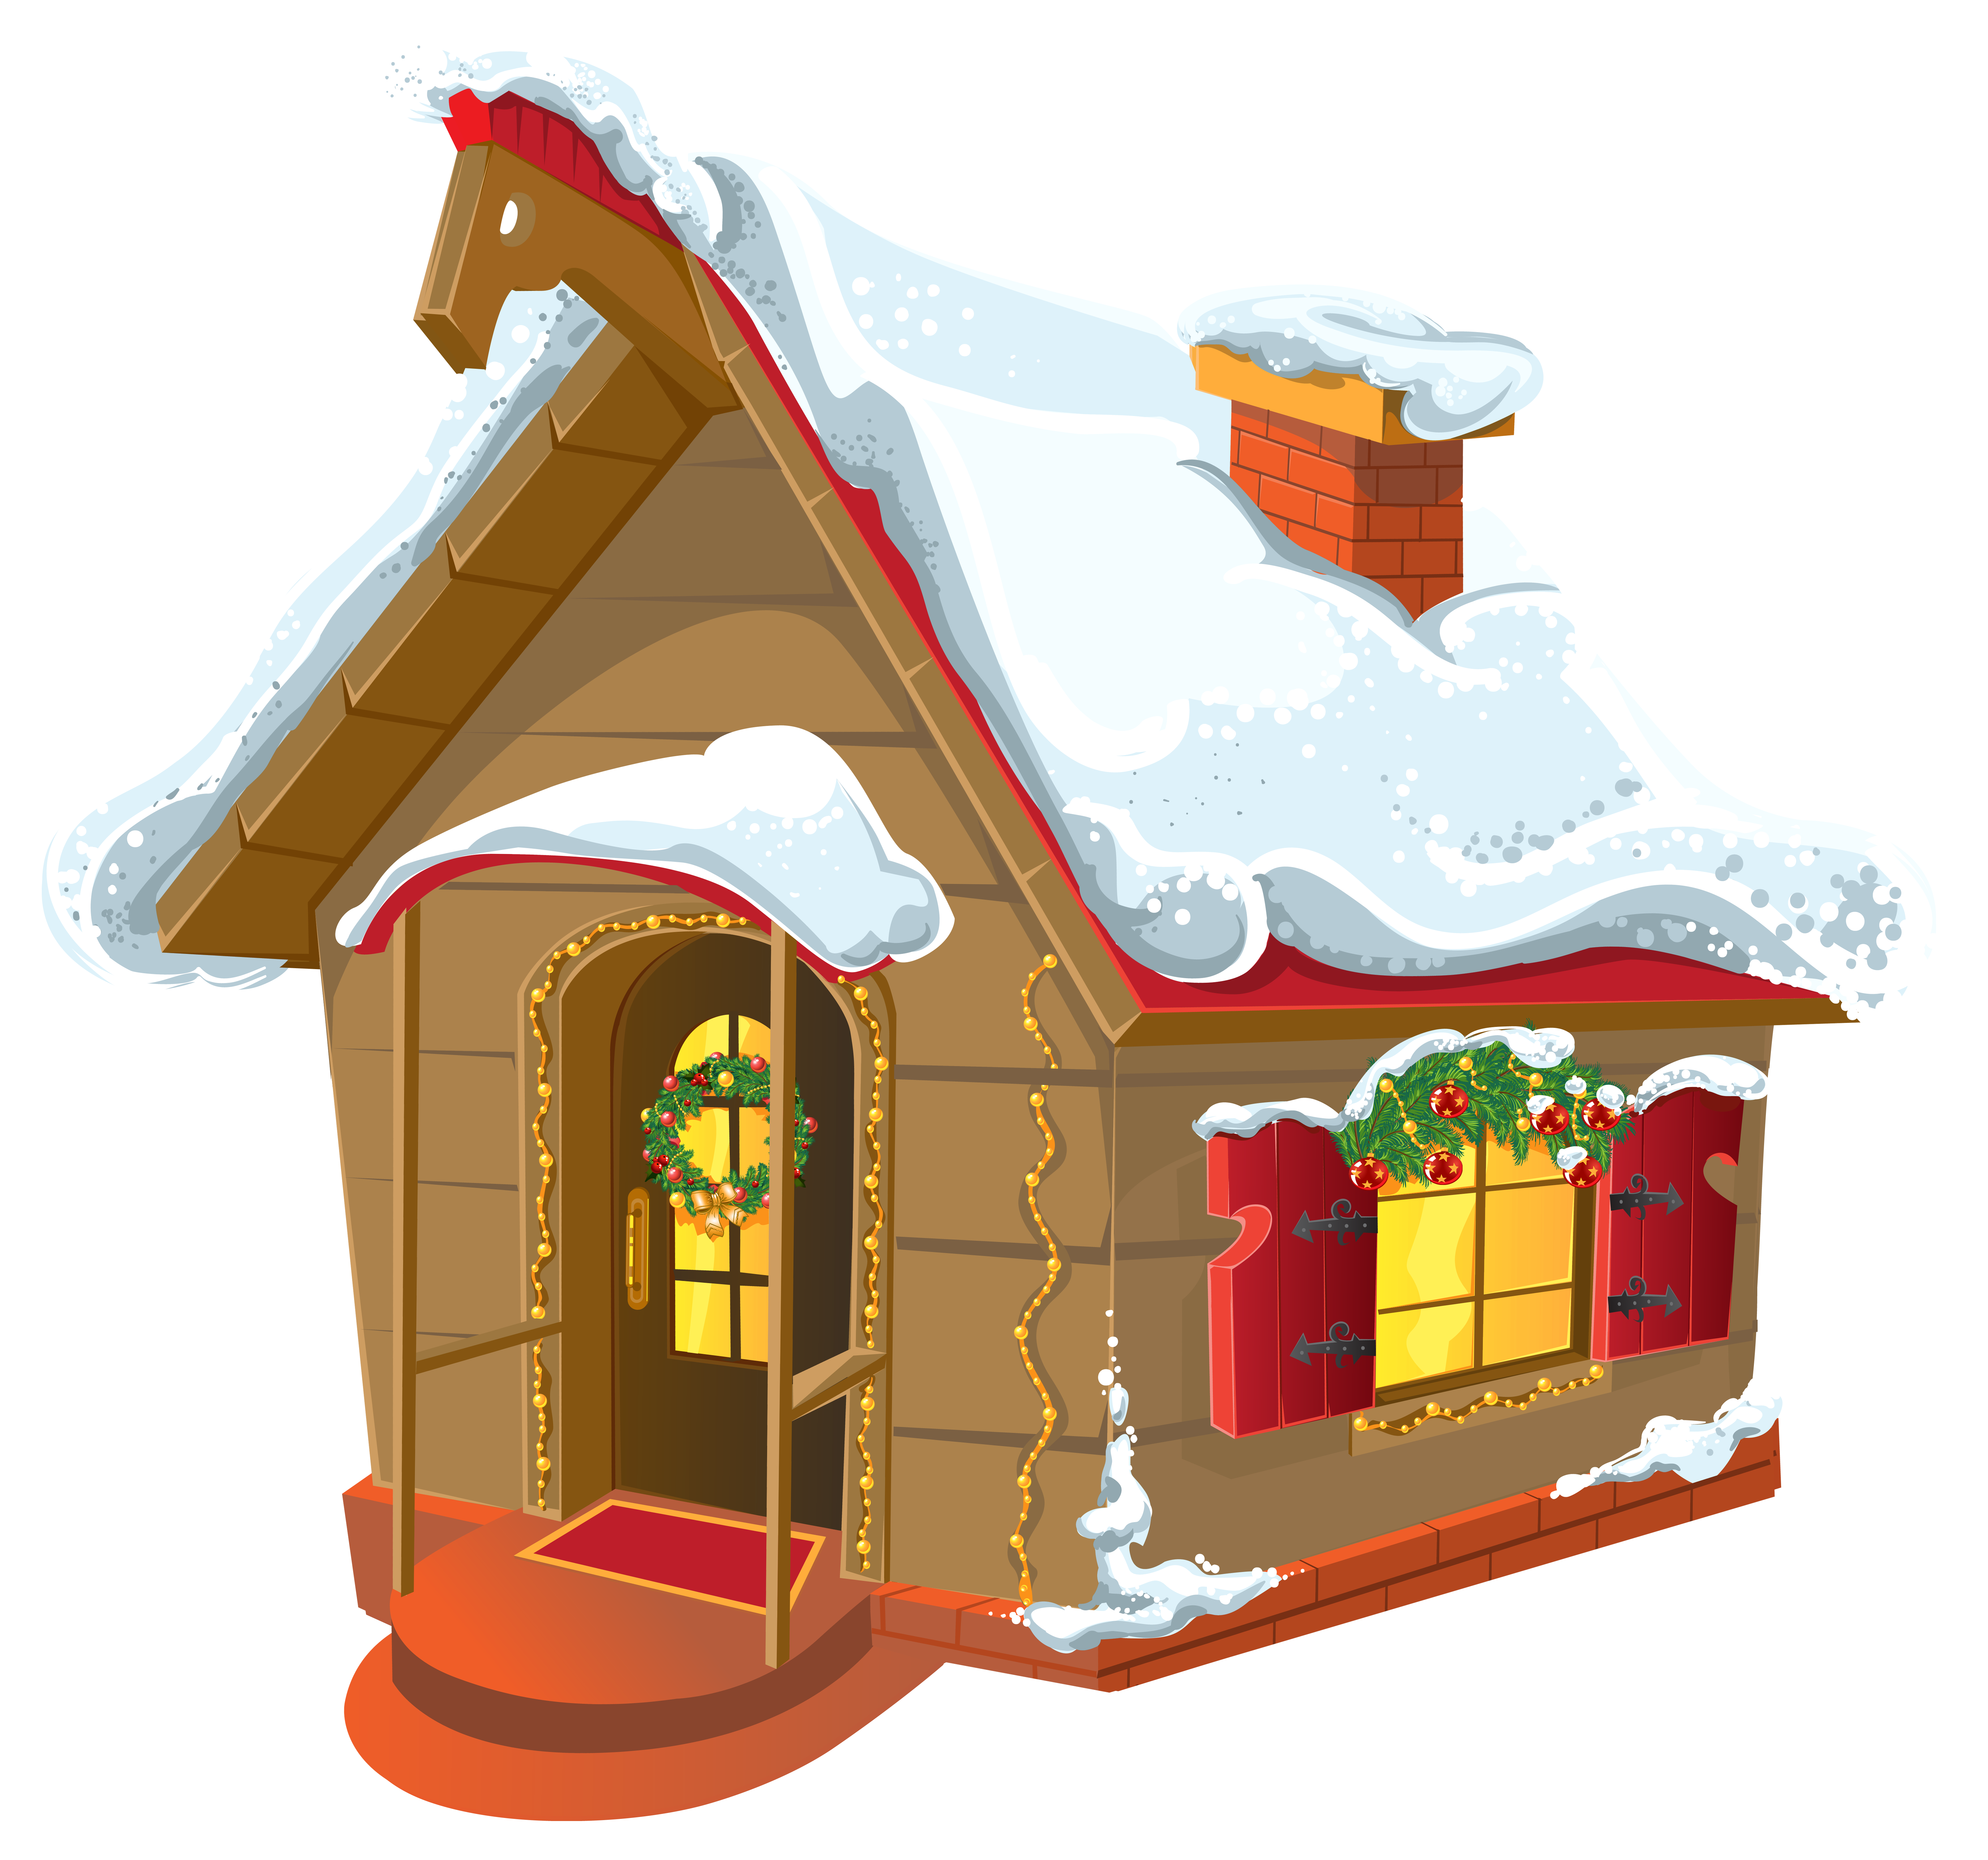 Christmas Cabin Clip Art Clipart Images #950038.